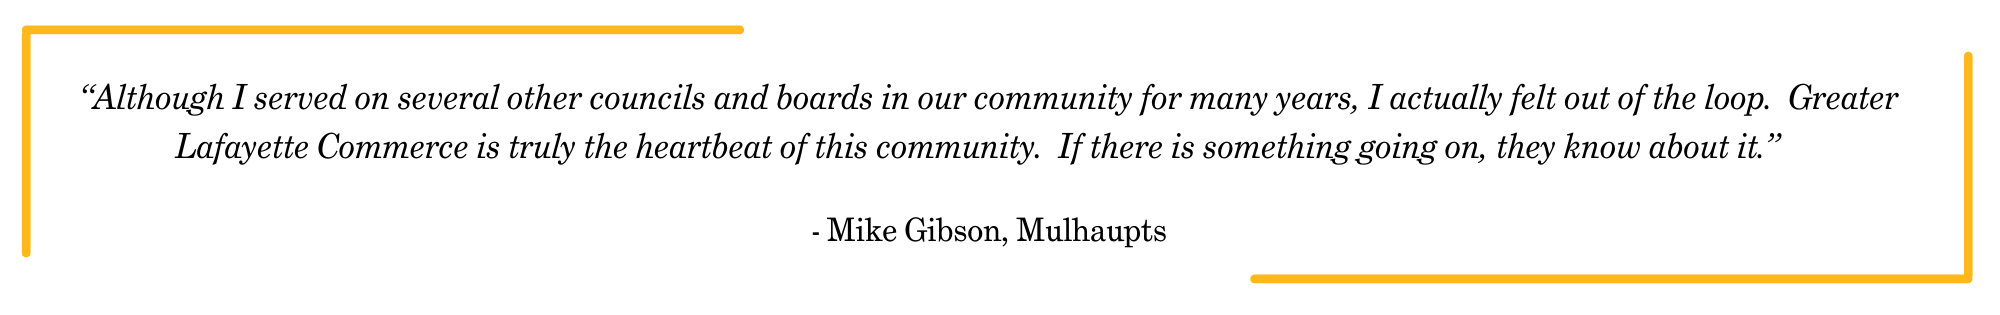 Mike Gibson